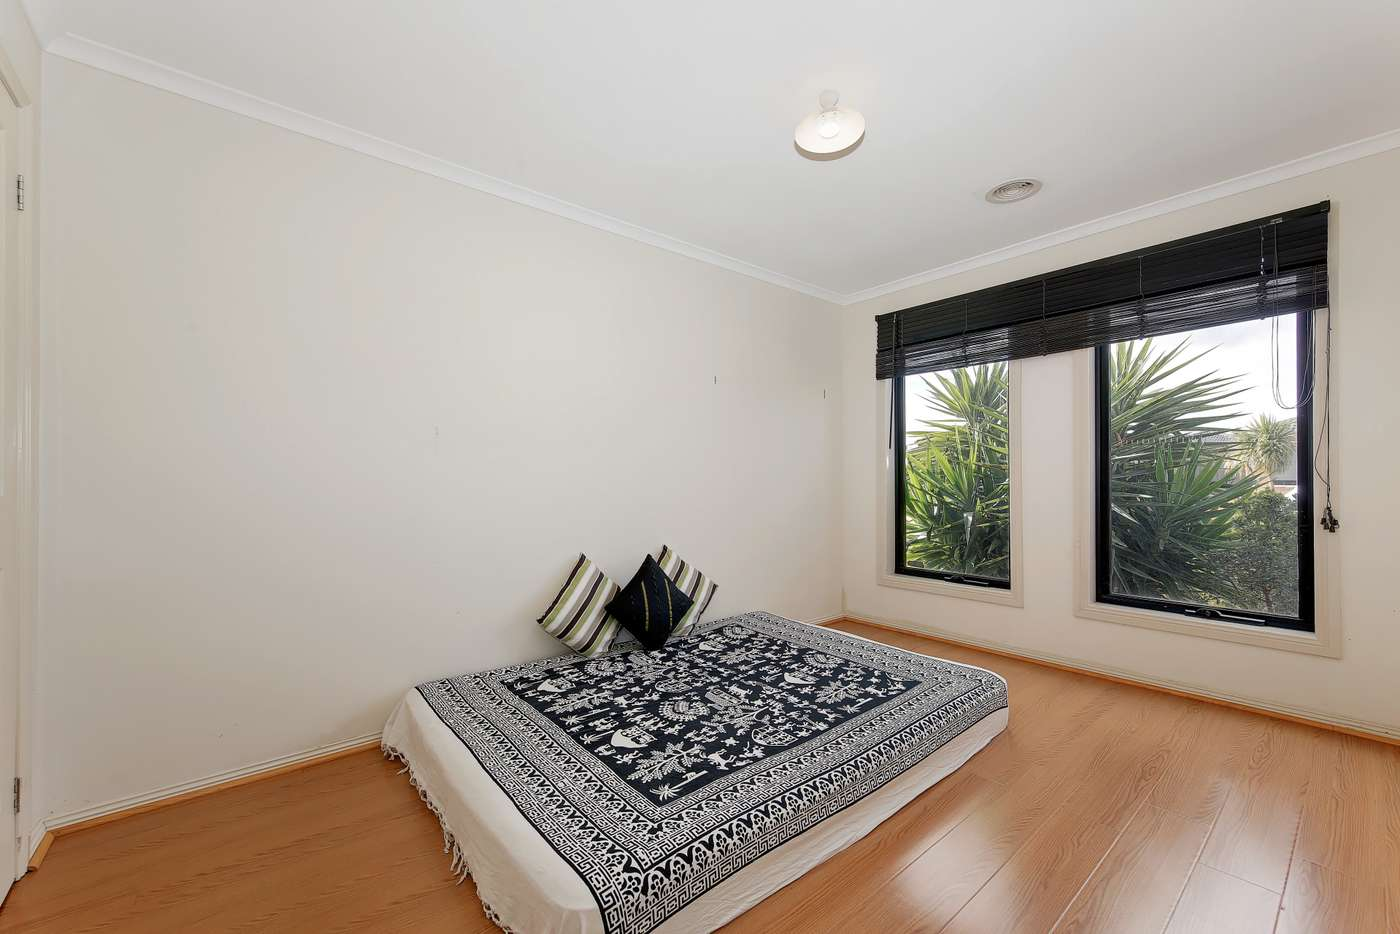 Sixth view of Homely house listing, 11 Chapman  Drive, Wyndham Vale VIC 3024